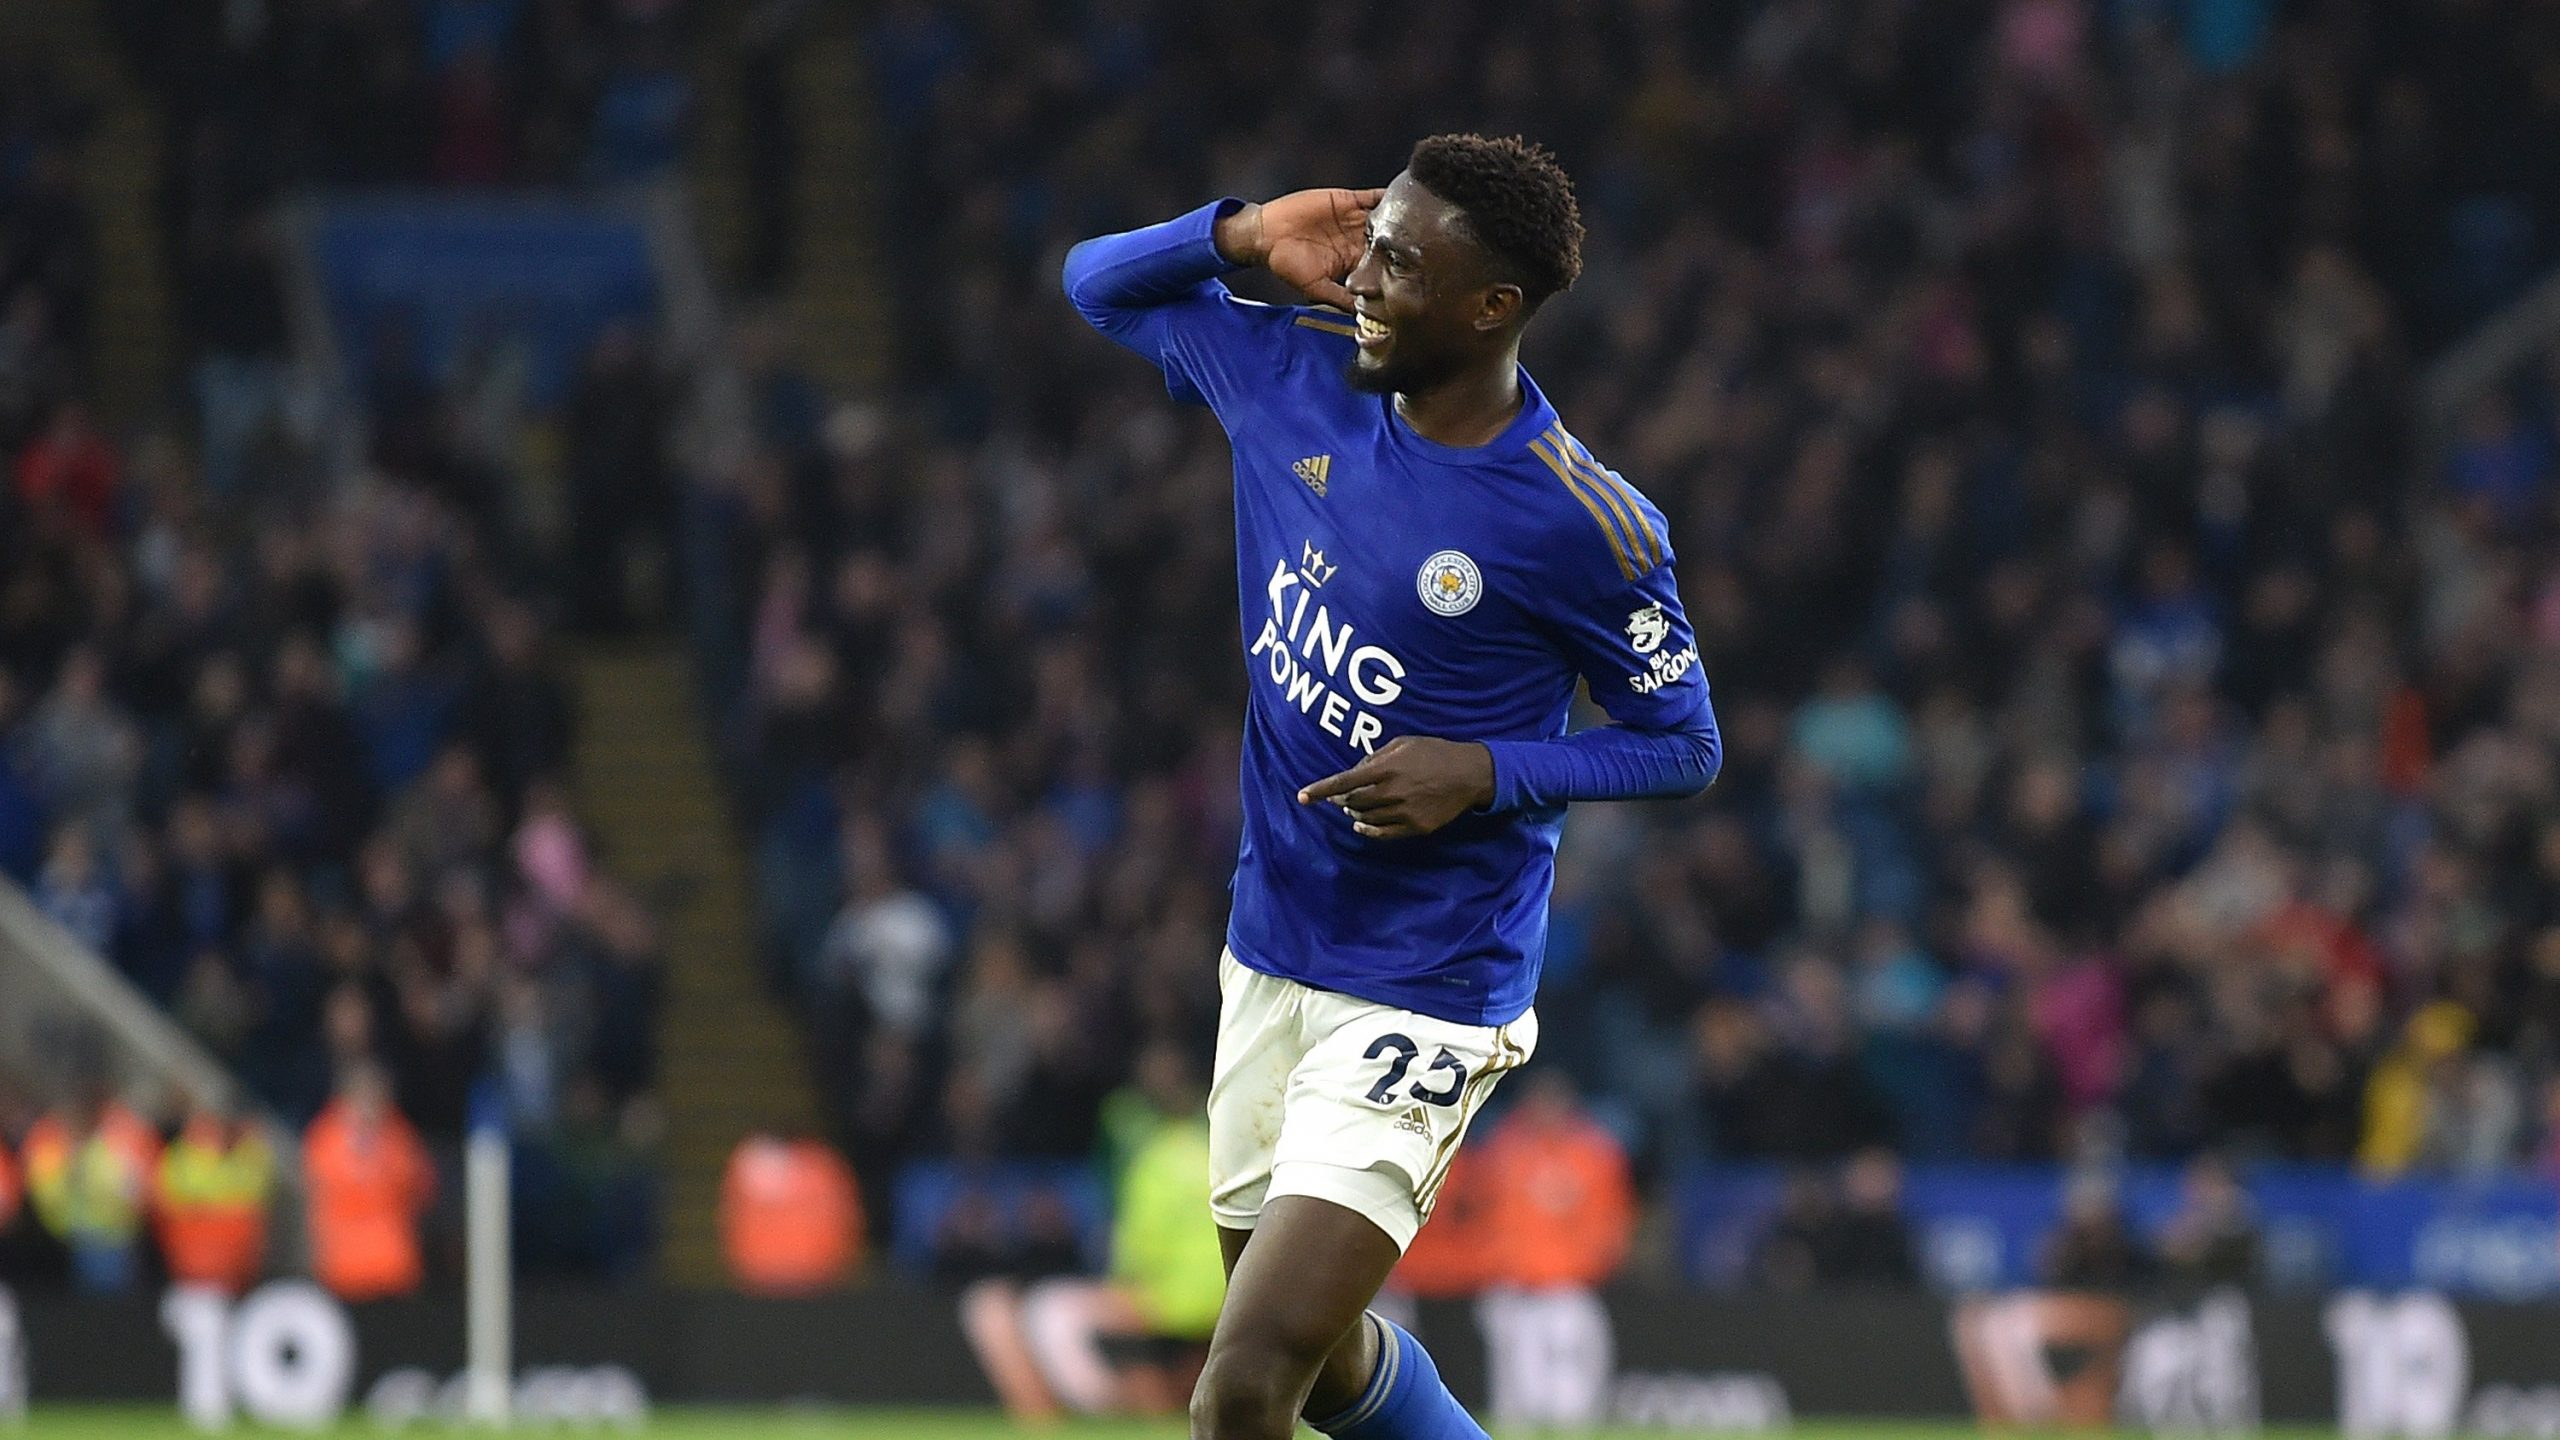 Rodgers: Ndidi's Centre-Back Role Temporary